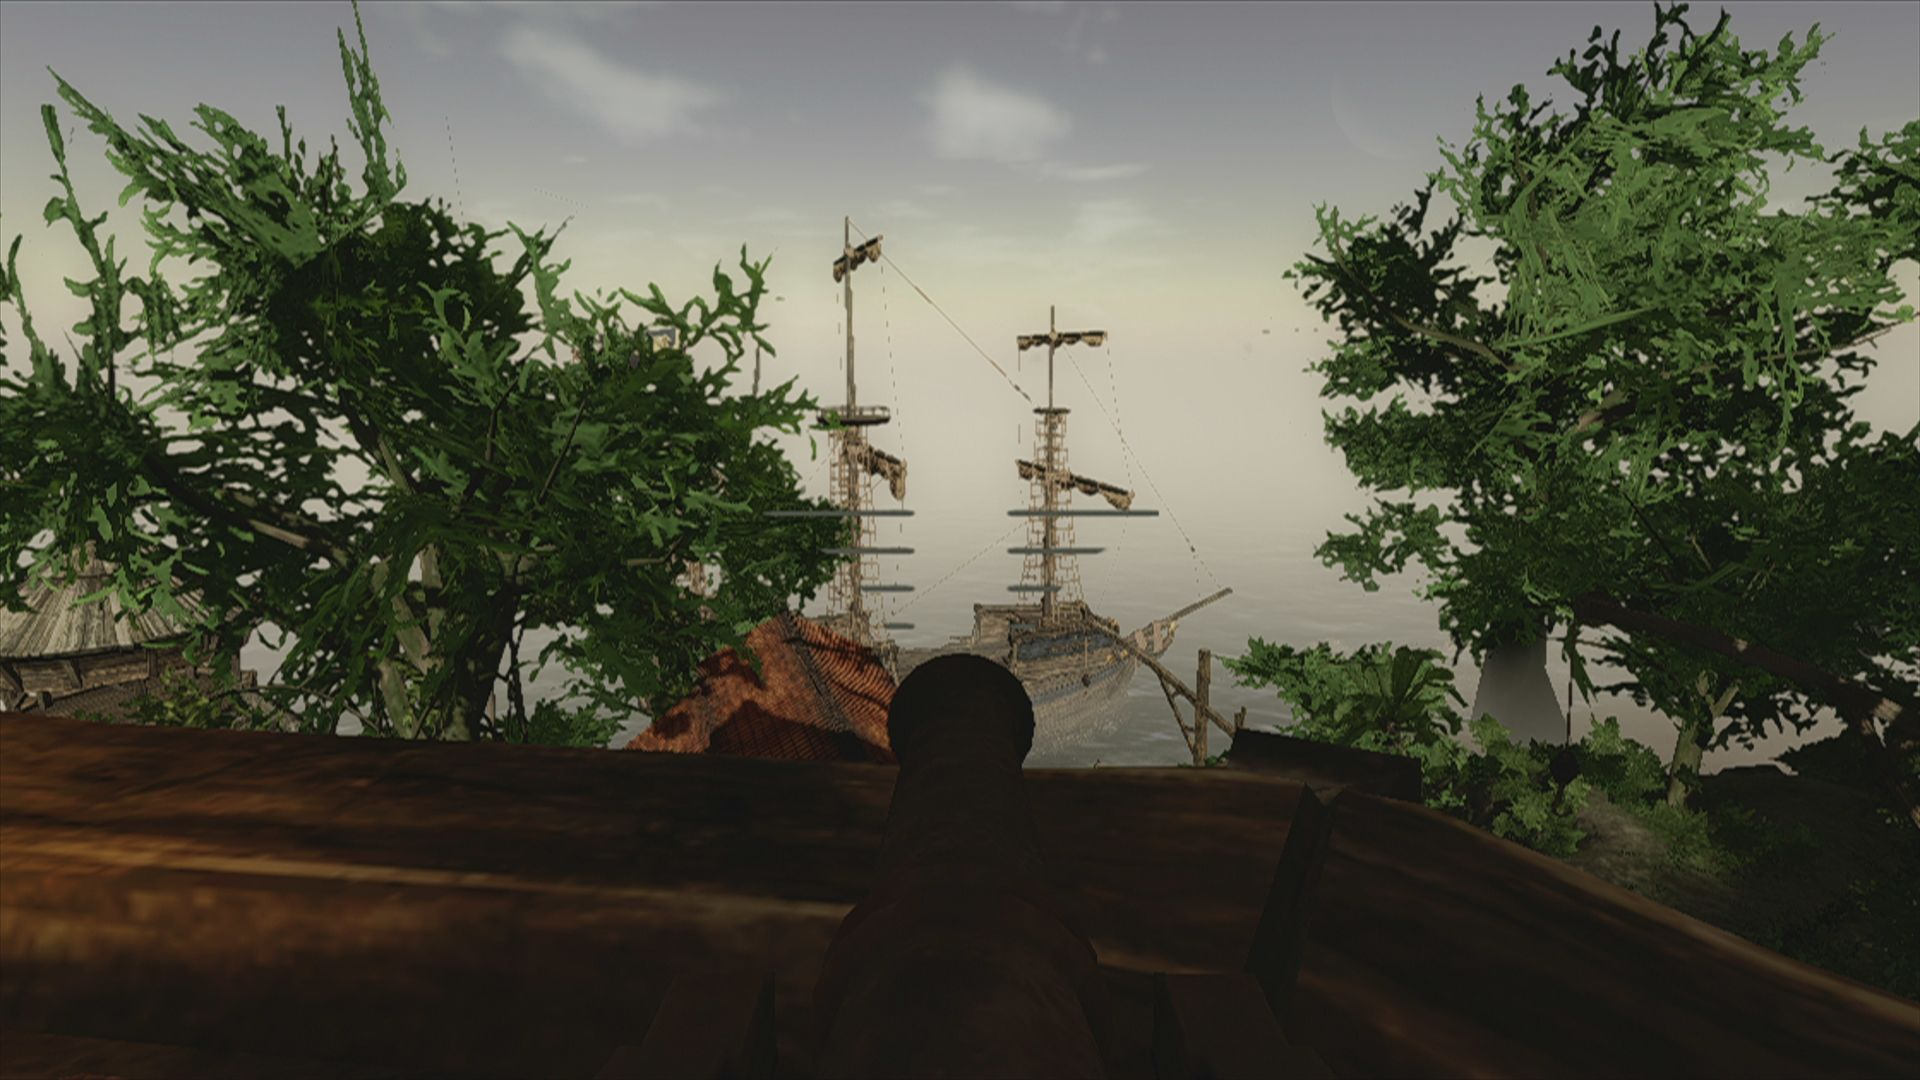 Risen 2: Dark Waters Xbox 360 and here we are aiming at it with the stationary cannon